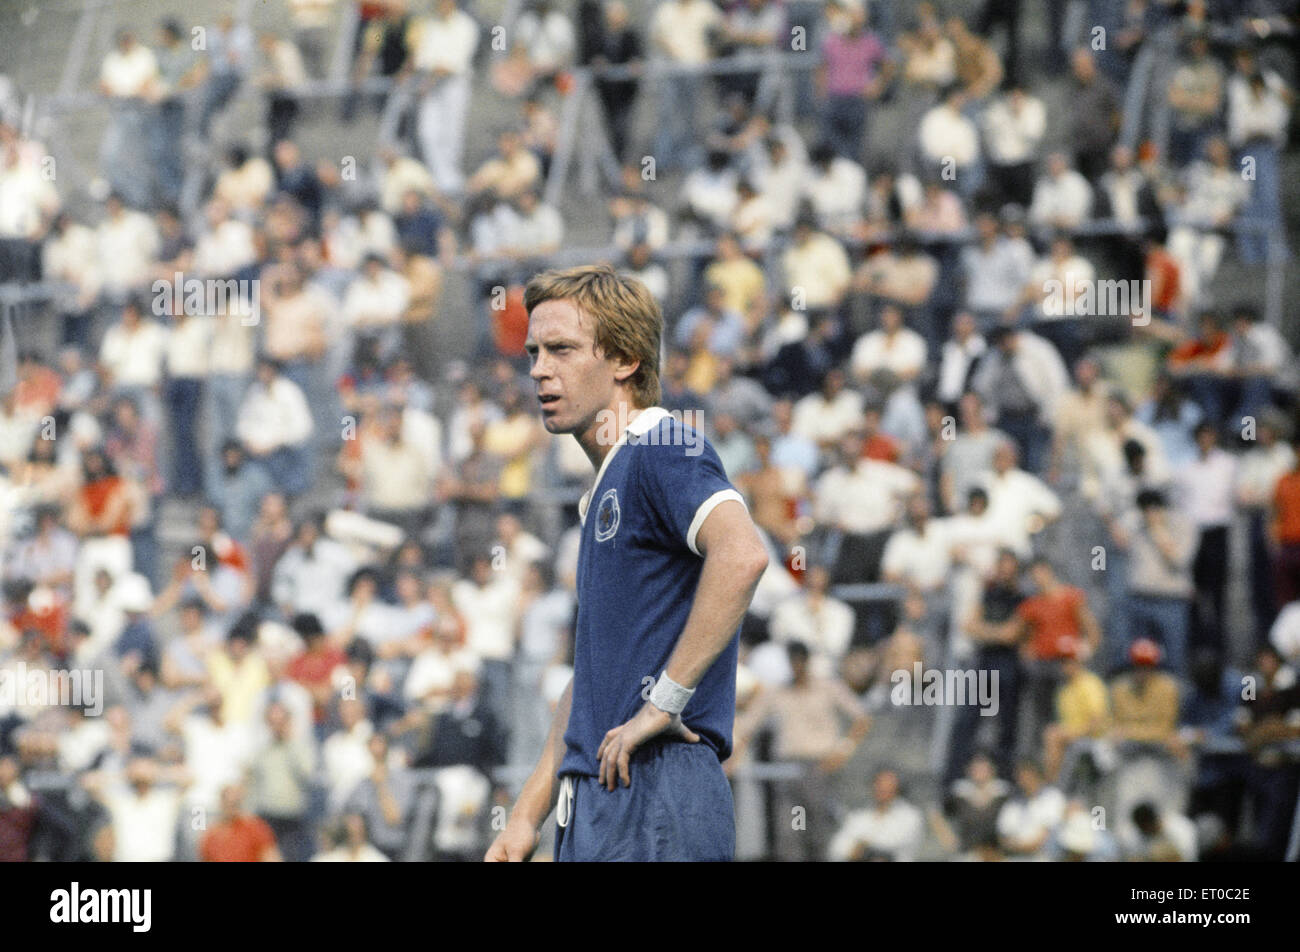 Charlton Athletic v Leicester City.  Steve Whitworth of Leicester. 14th August 1976. - Stock Image